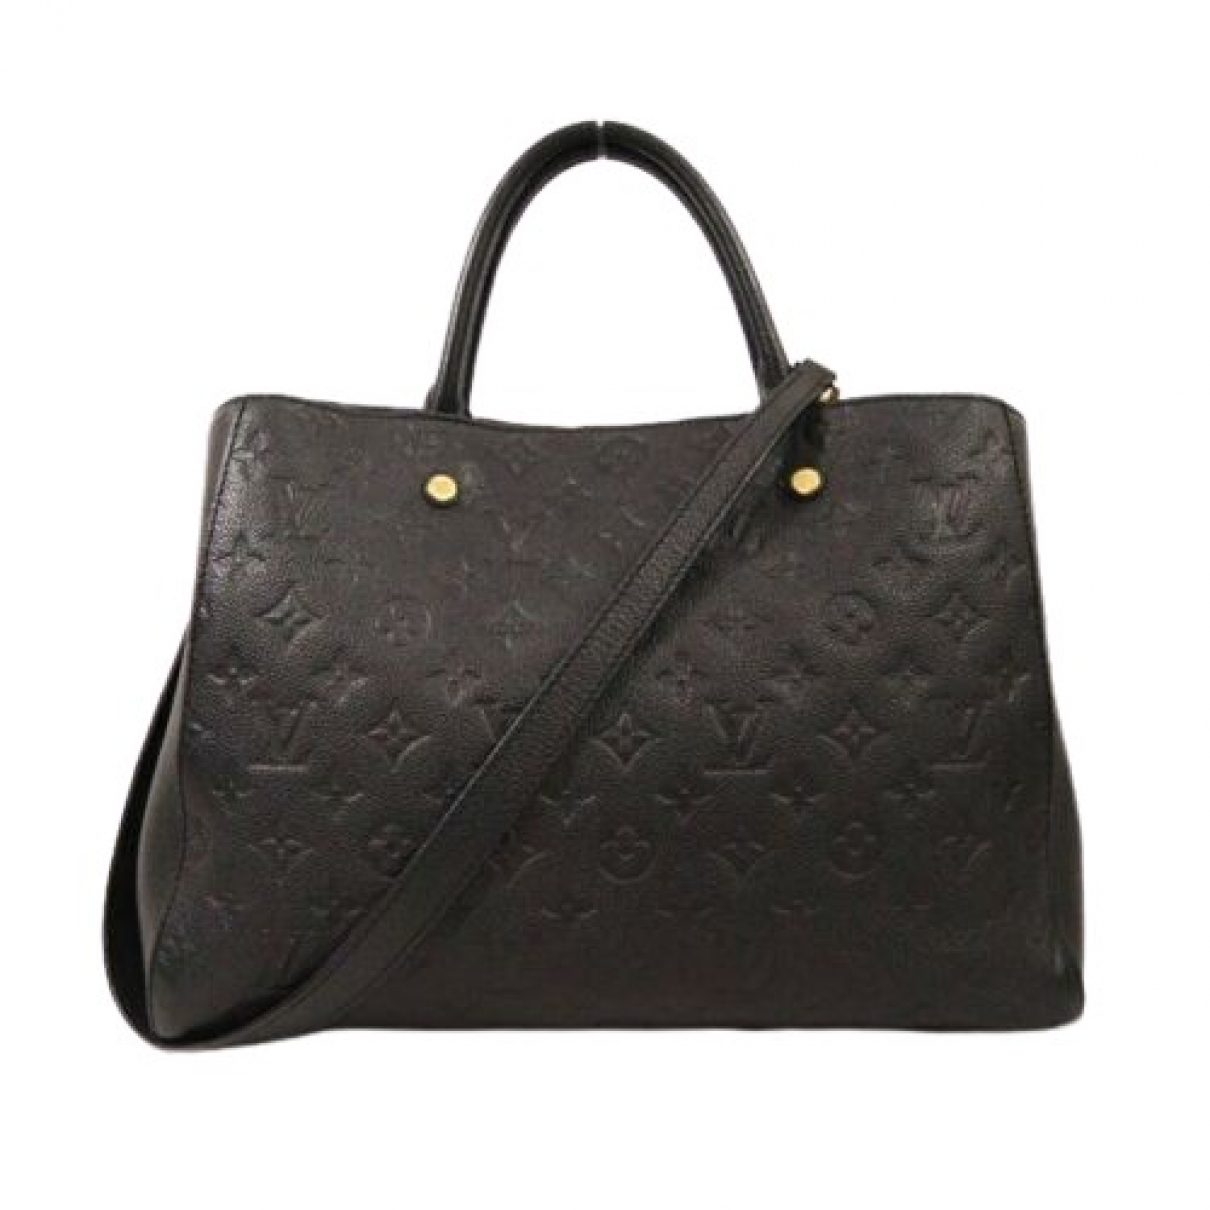 Louis Vuitton Montaigne Black Leather handbag for Women \N